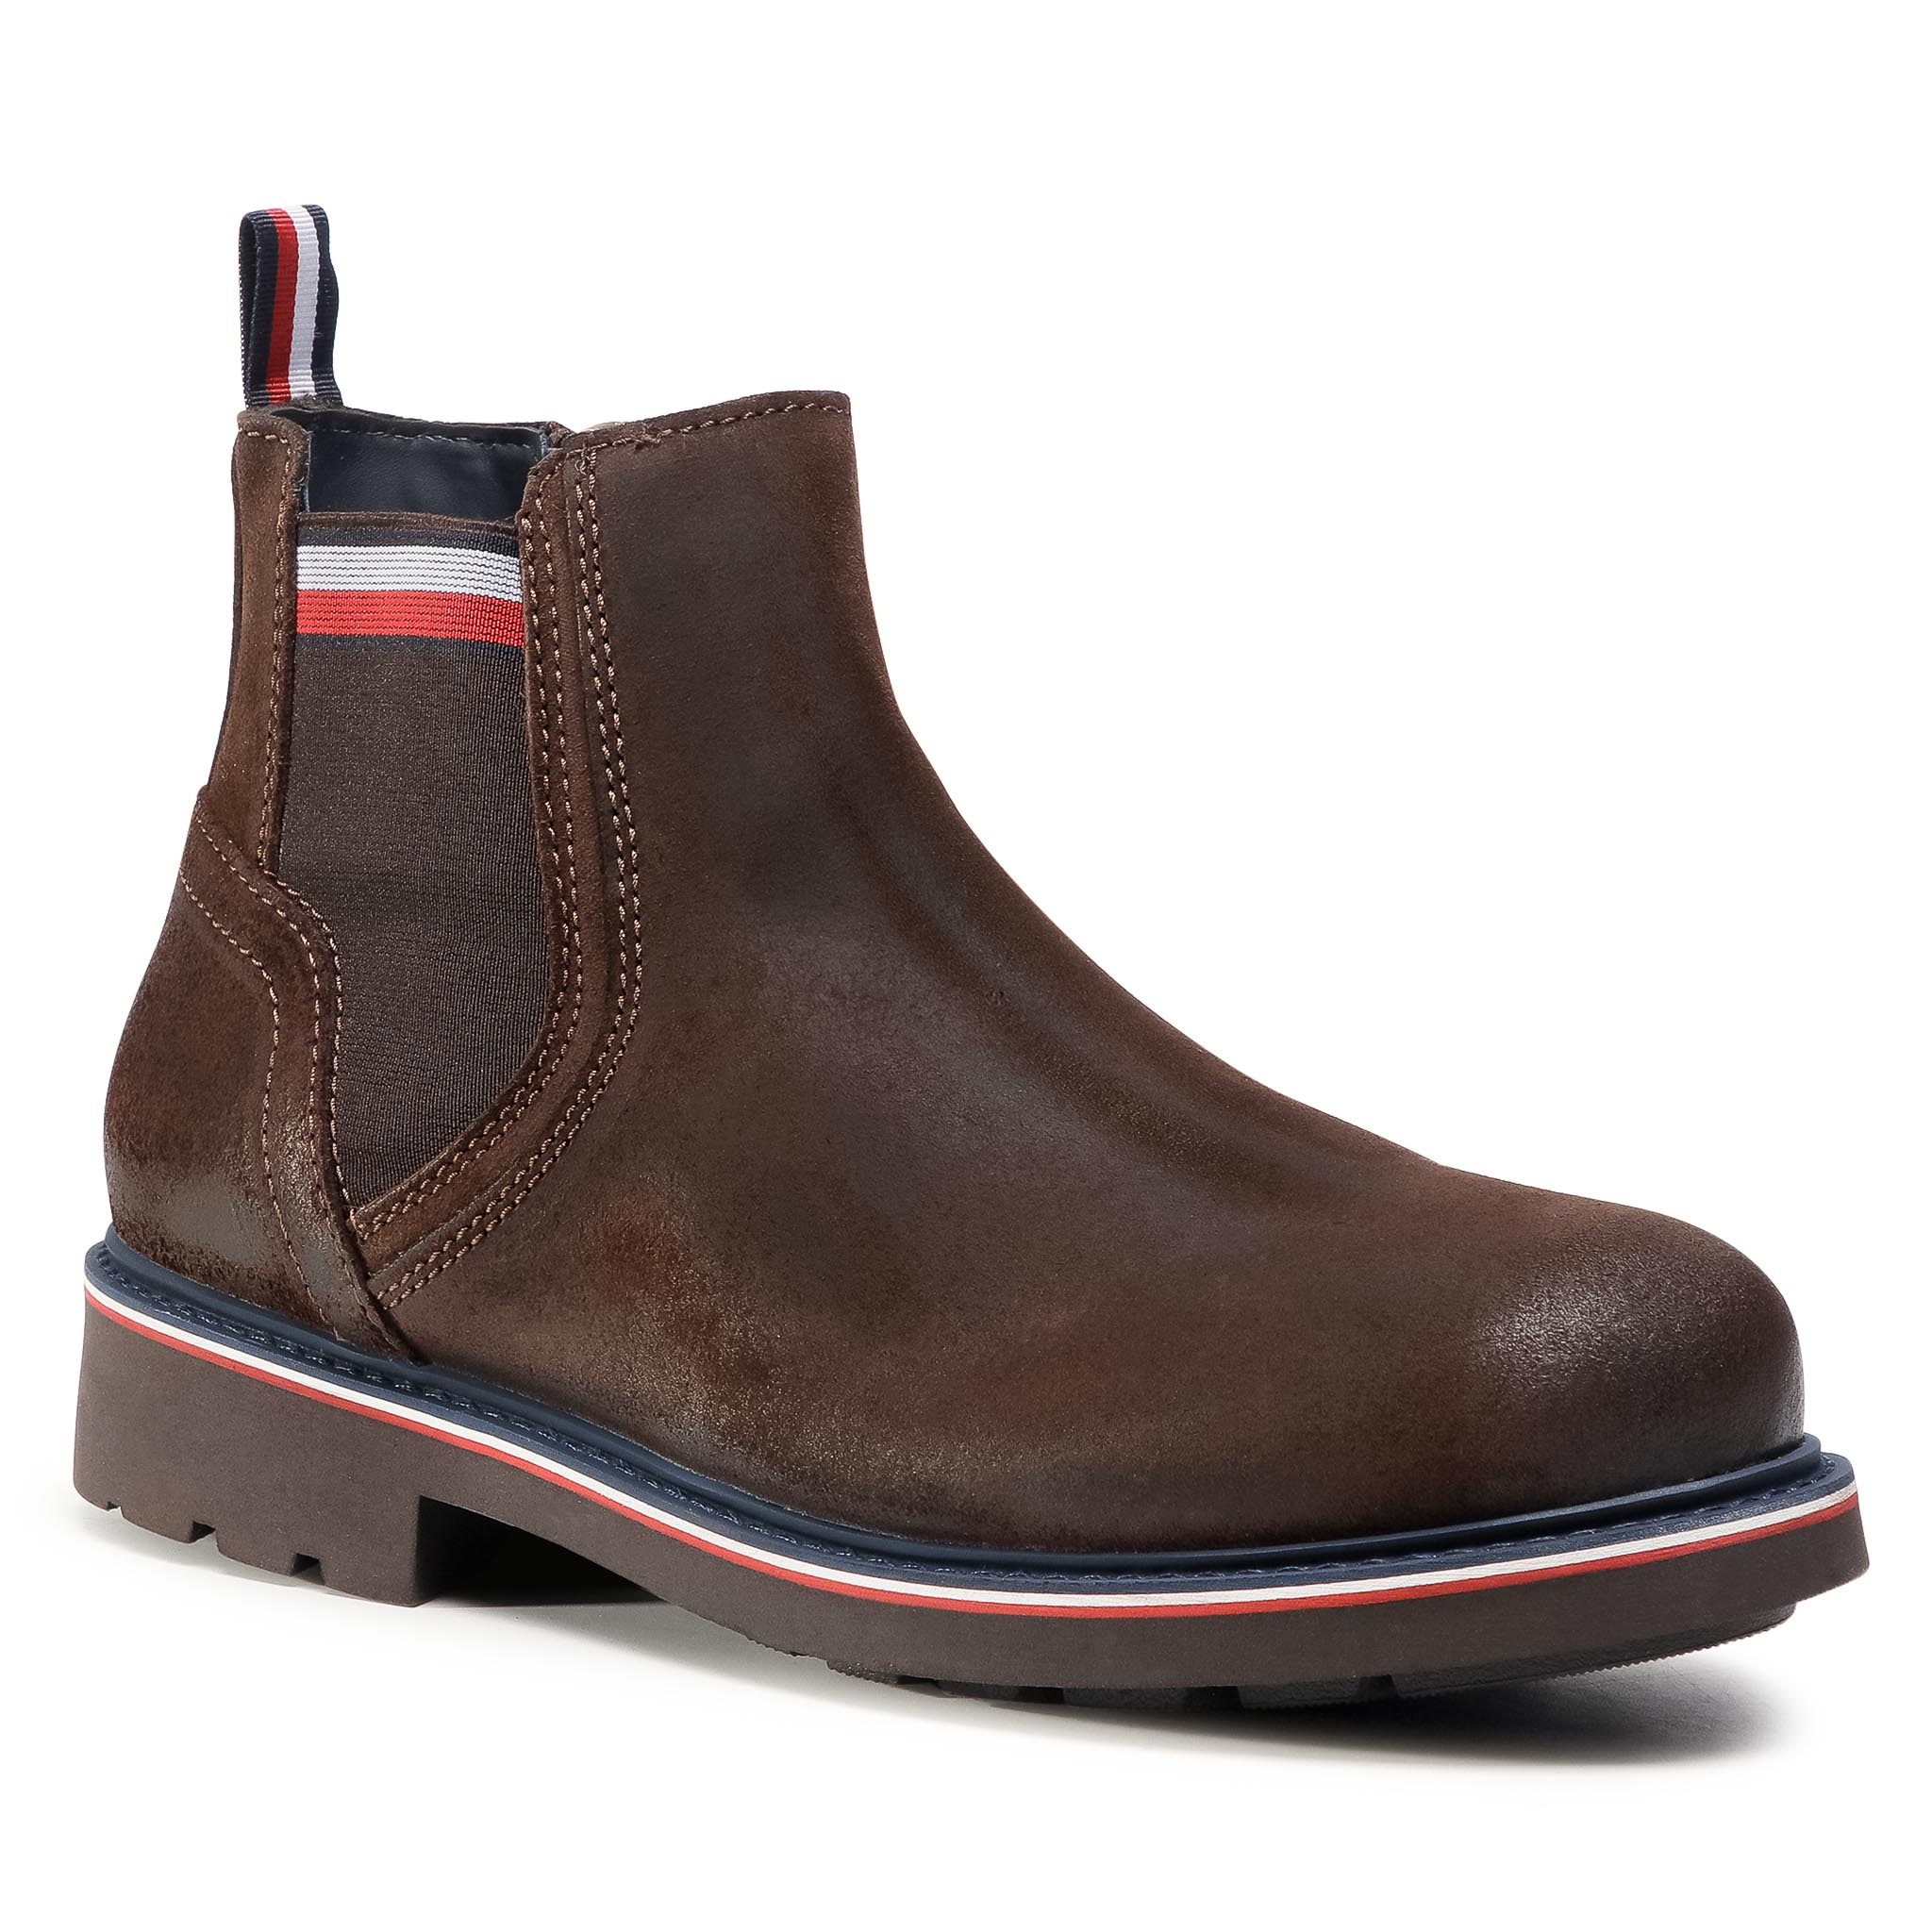 Boots TOMMY HILFIGER - Corporate Elastic Suede Boot FM0FM03053 Cocoa GT6